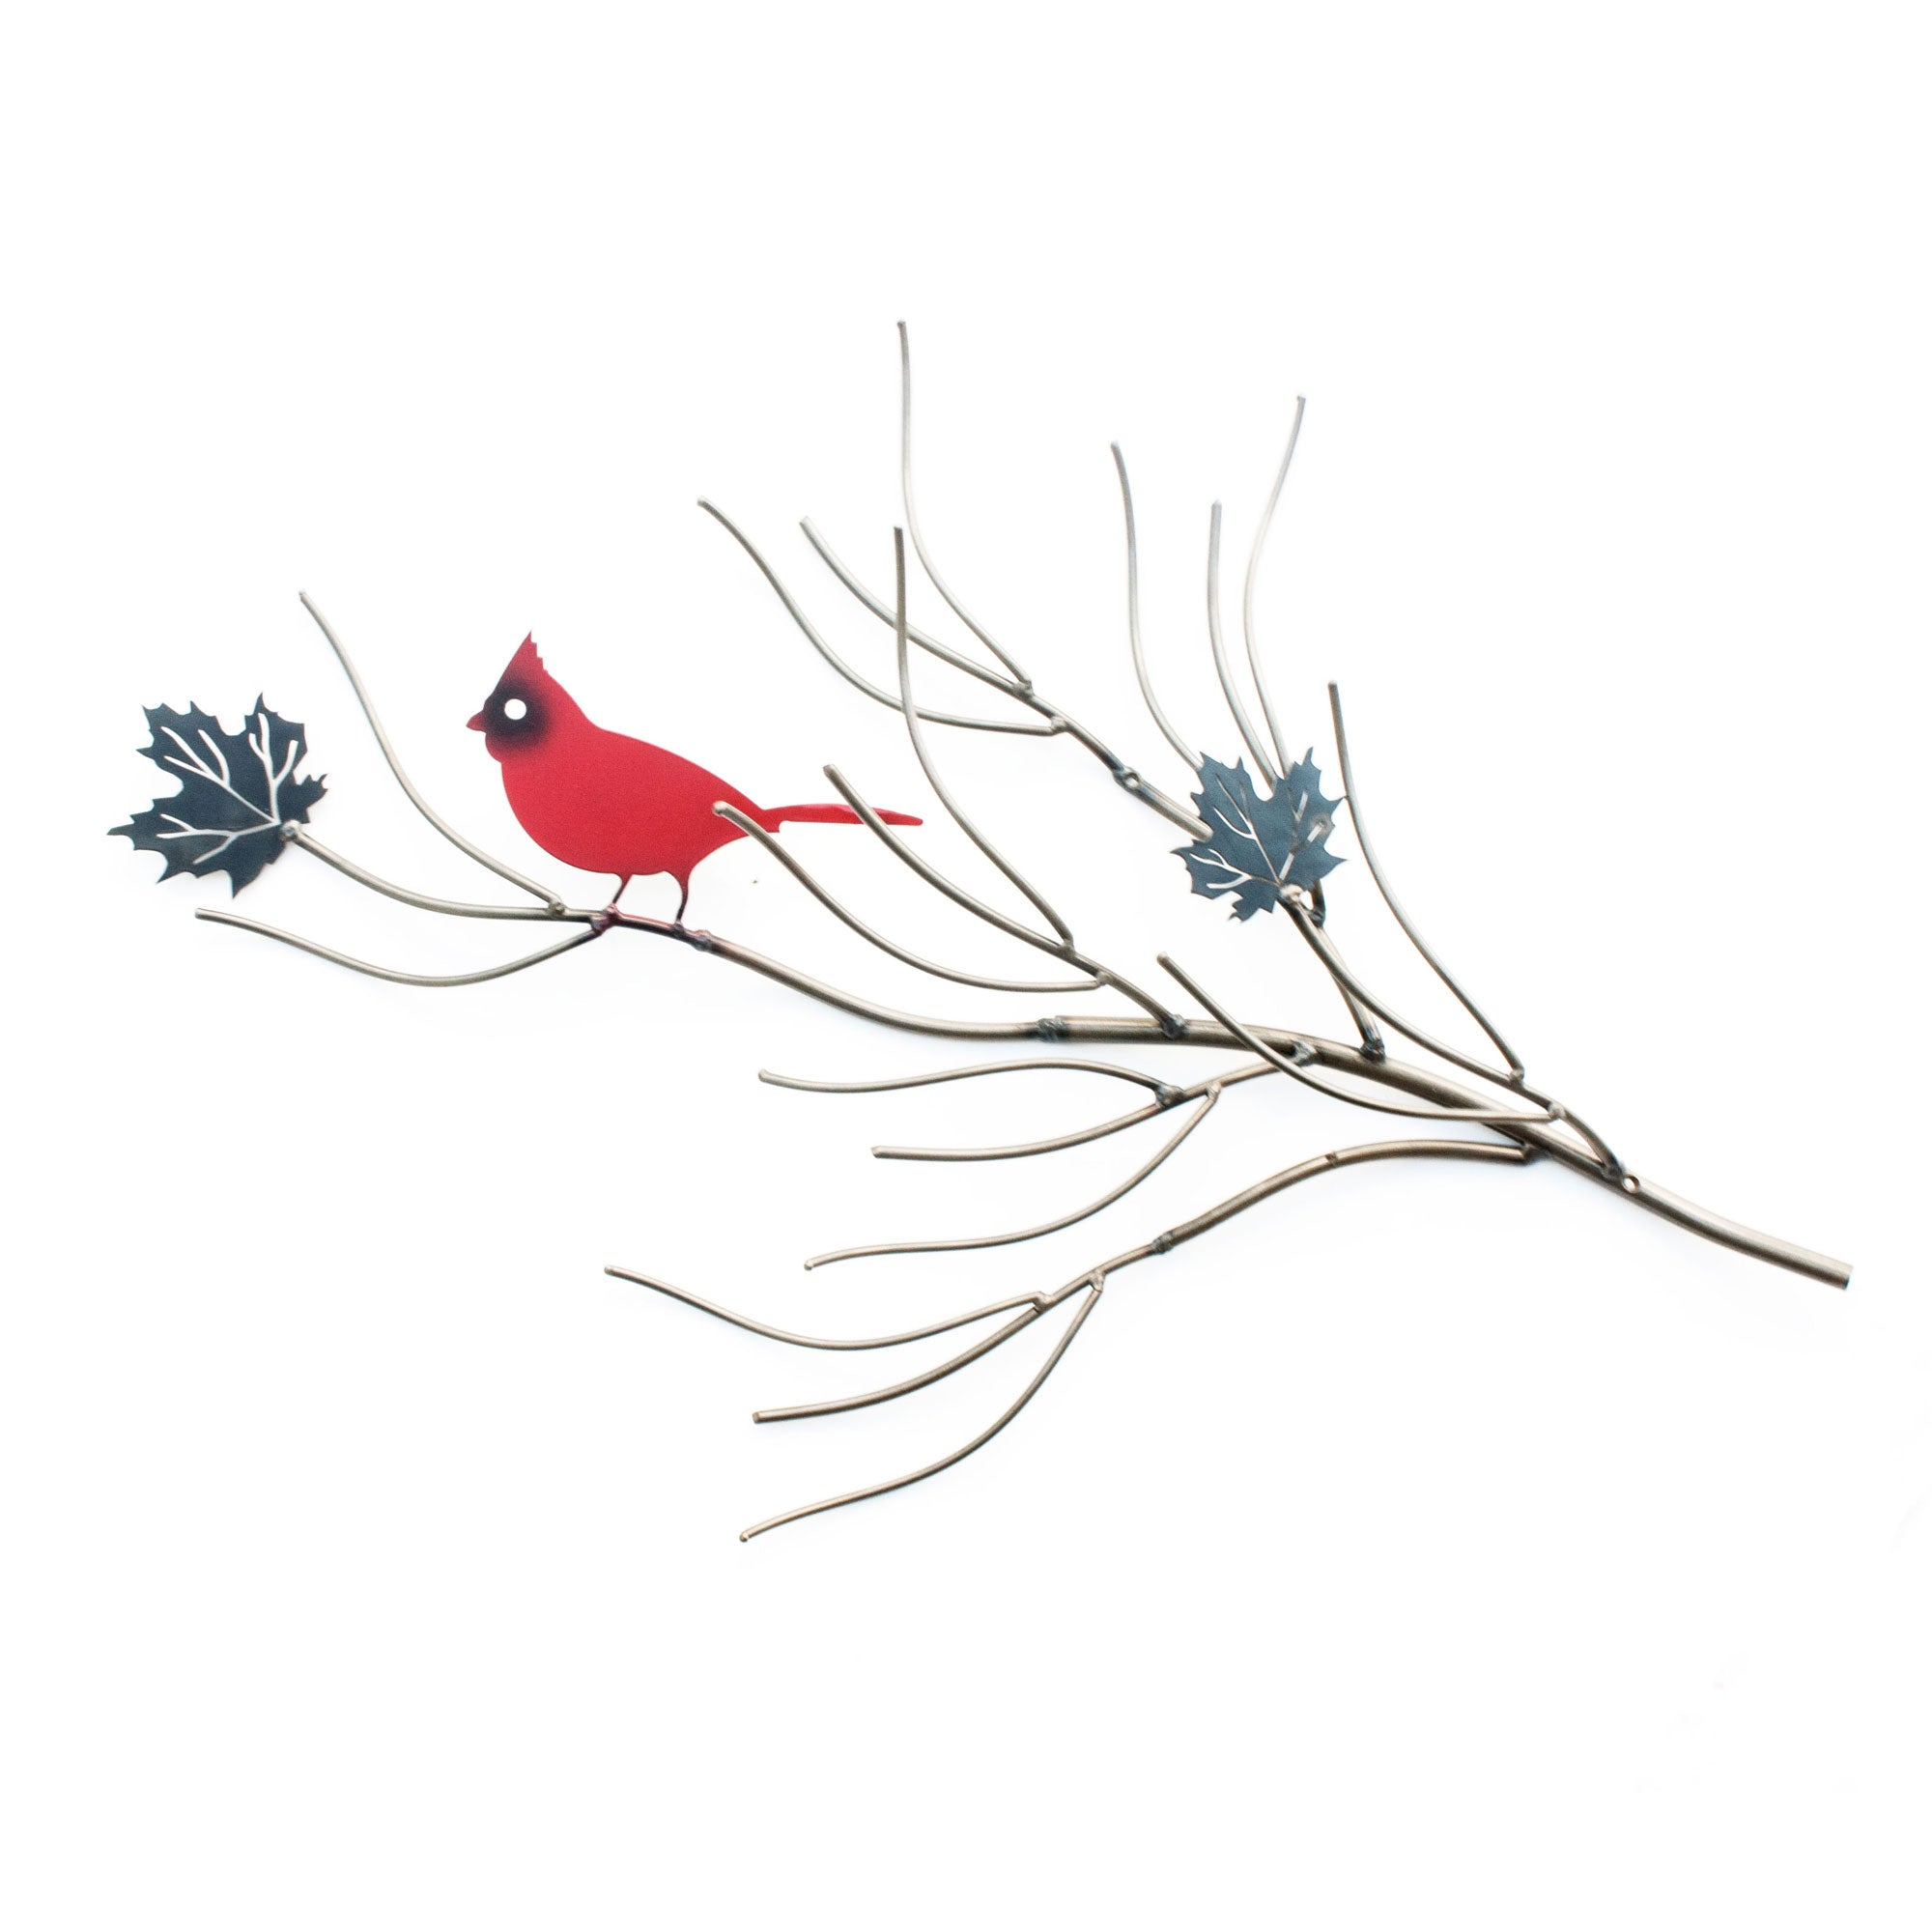 Yard Wall Art Red Cardinal Perched on branch